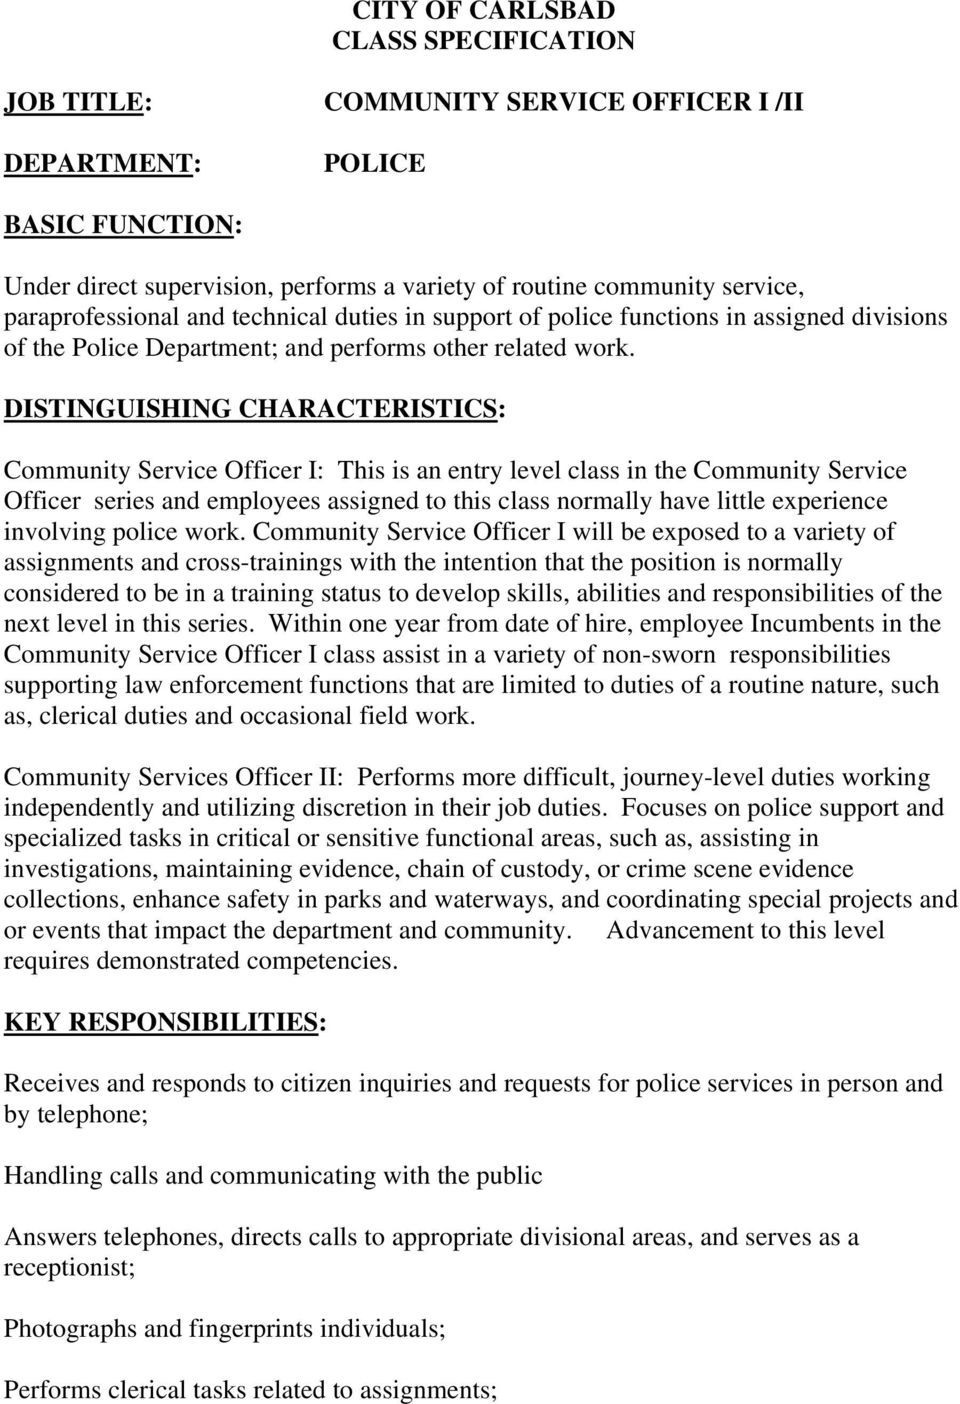 DISTINGUISHING CHARACTERISTICS: Community Service Officer I: This is an entry level class in the Community Service Officer series and employees assigned to this class normally have little experience